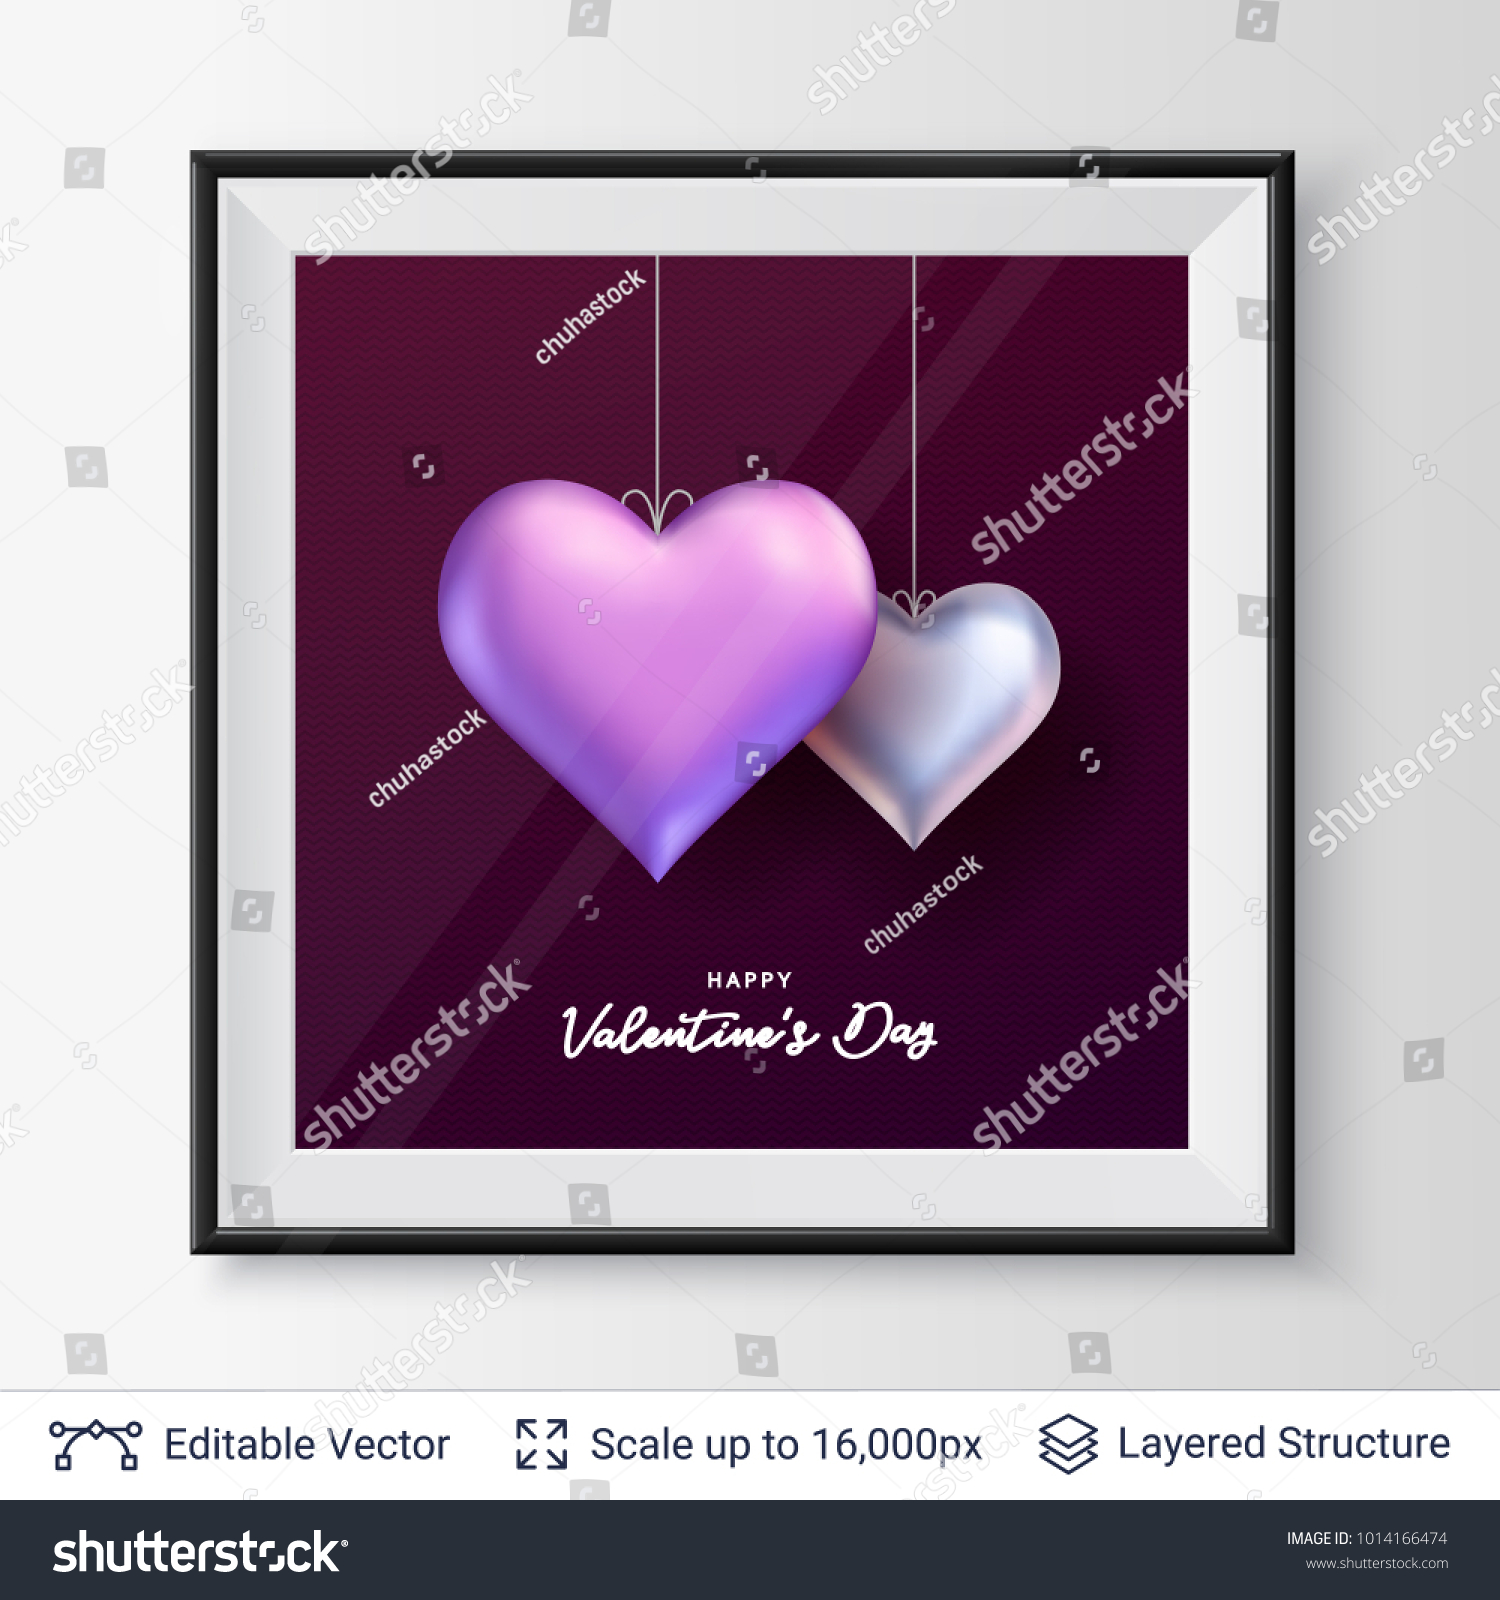 Pair 3d heart shaped air balloons stock vector 1014166474 shutterstock pair of 3d heart shaped air balloons easy to edit vector background holiday greeting kristyandbryce Choice Image